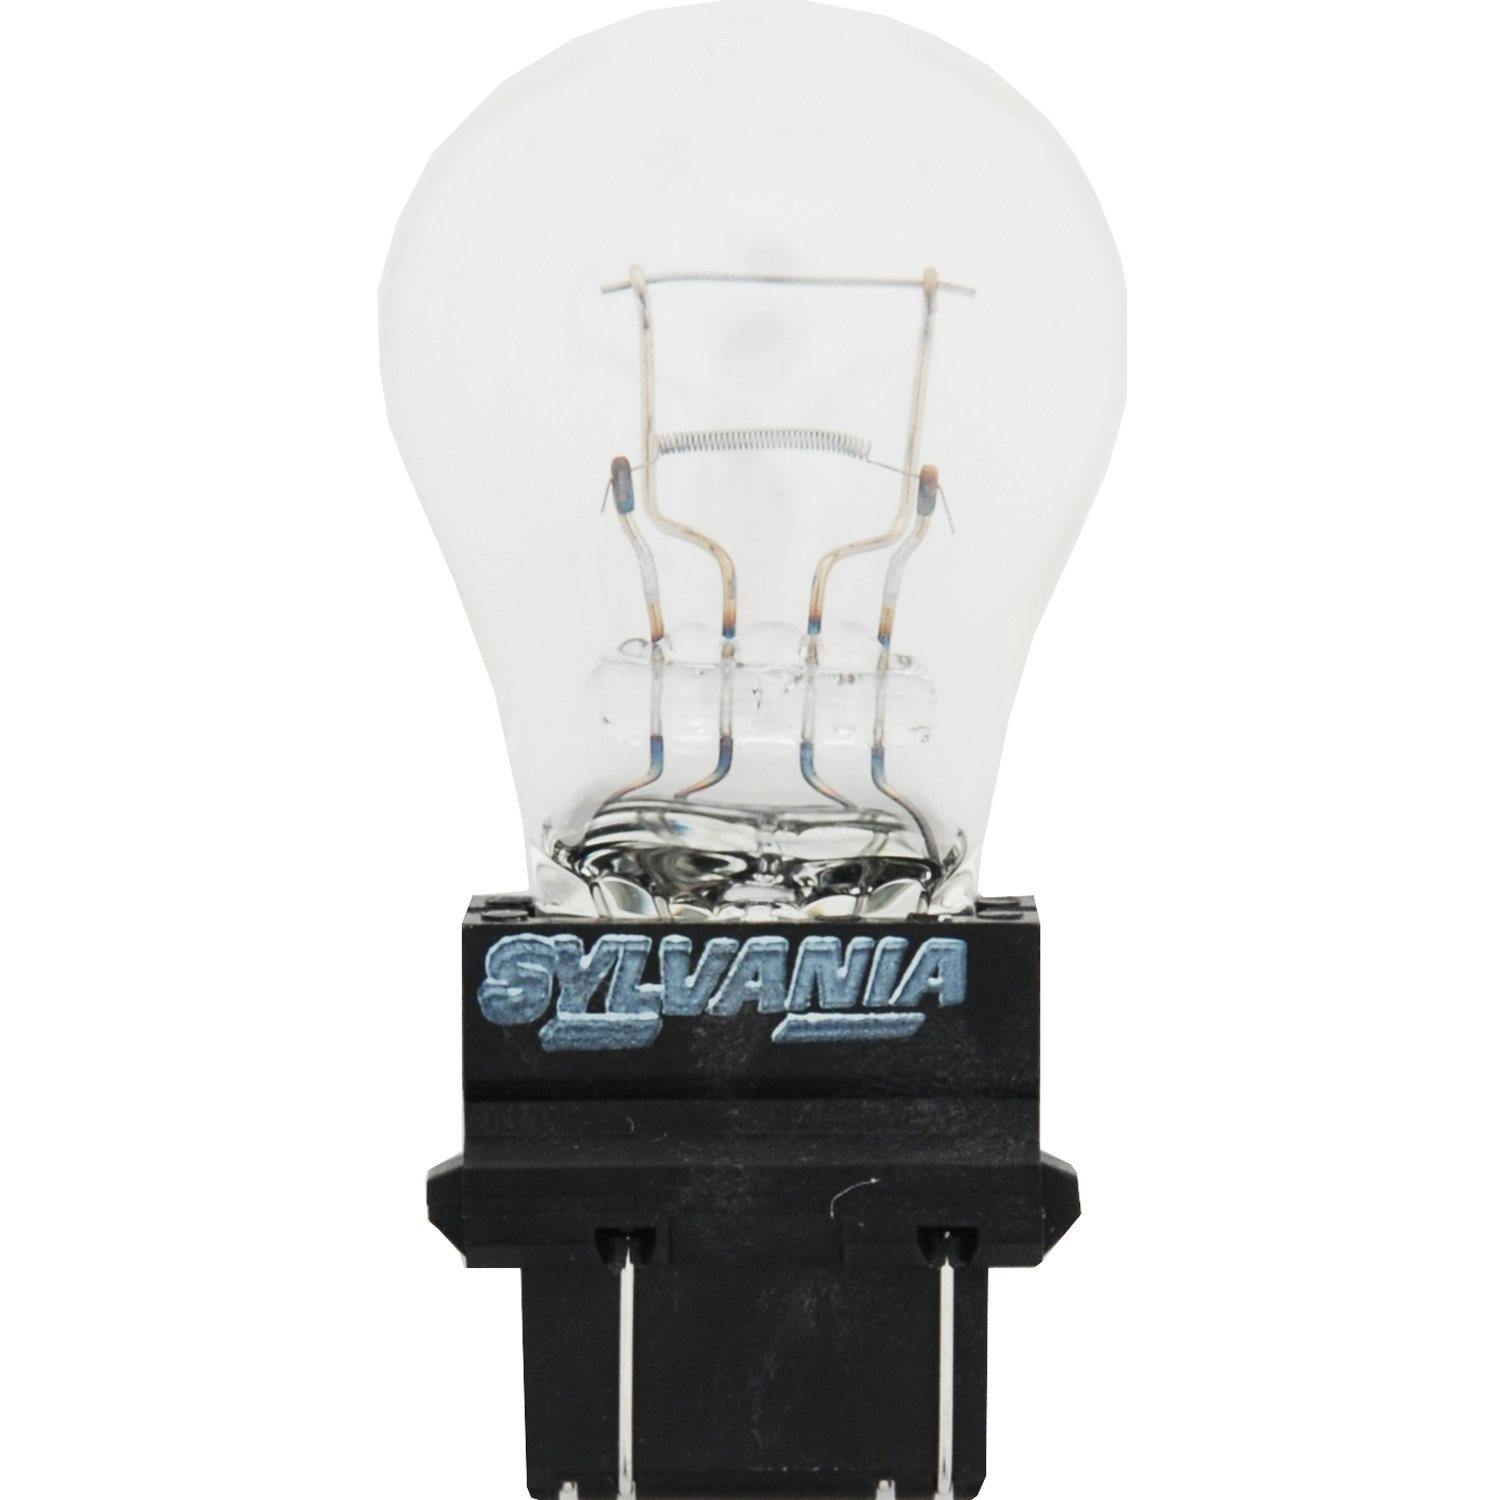 SYLVANIA 3157 Long Life Miniature Bulb, (Contains 10 Bulbs) by Sylvania